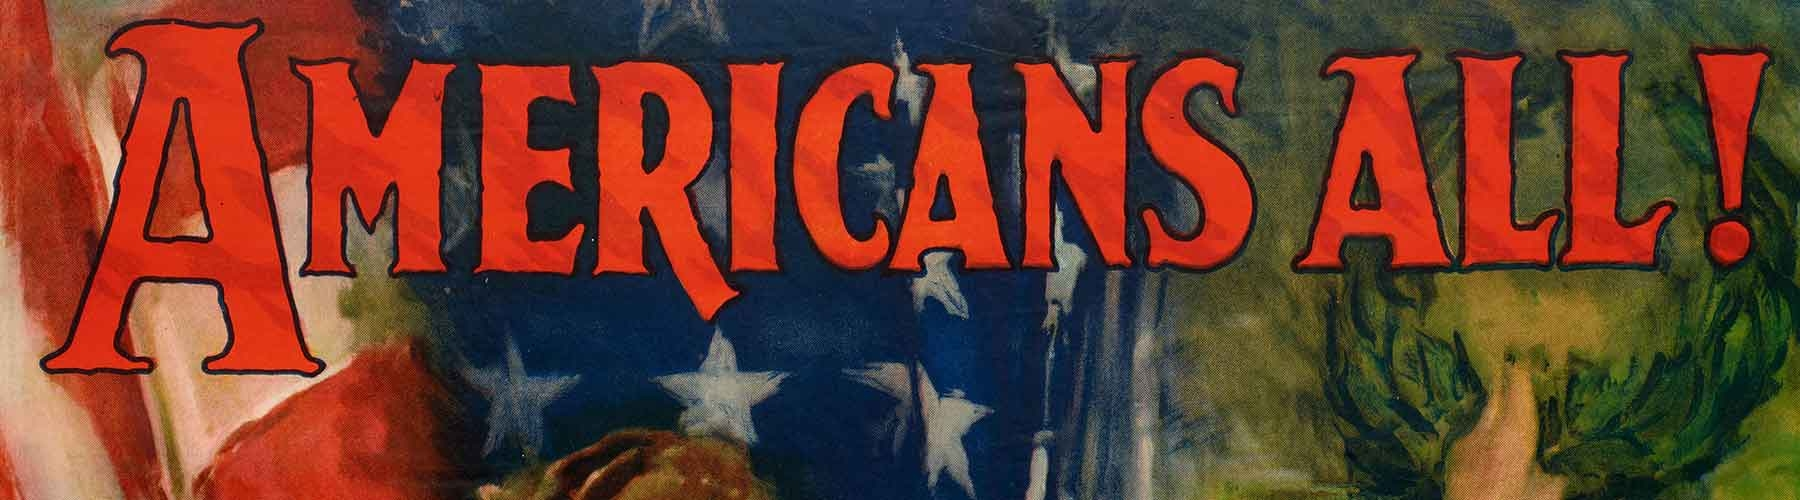 Patriotic poster from 1919